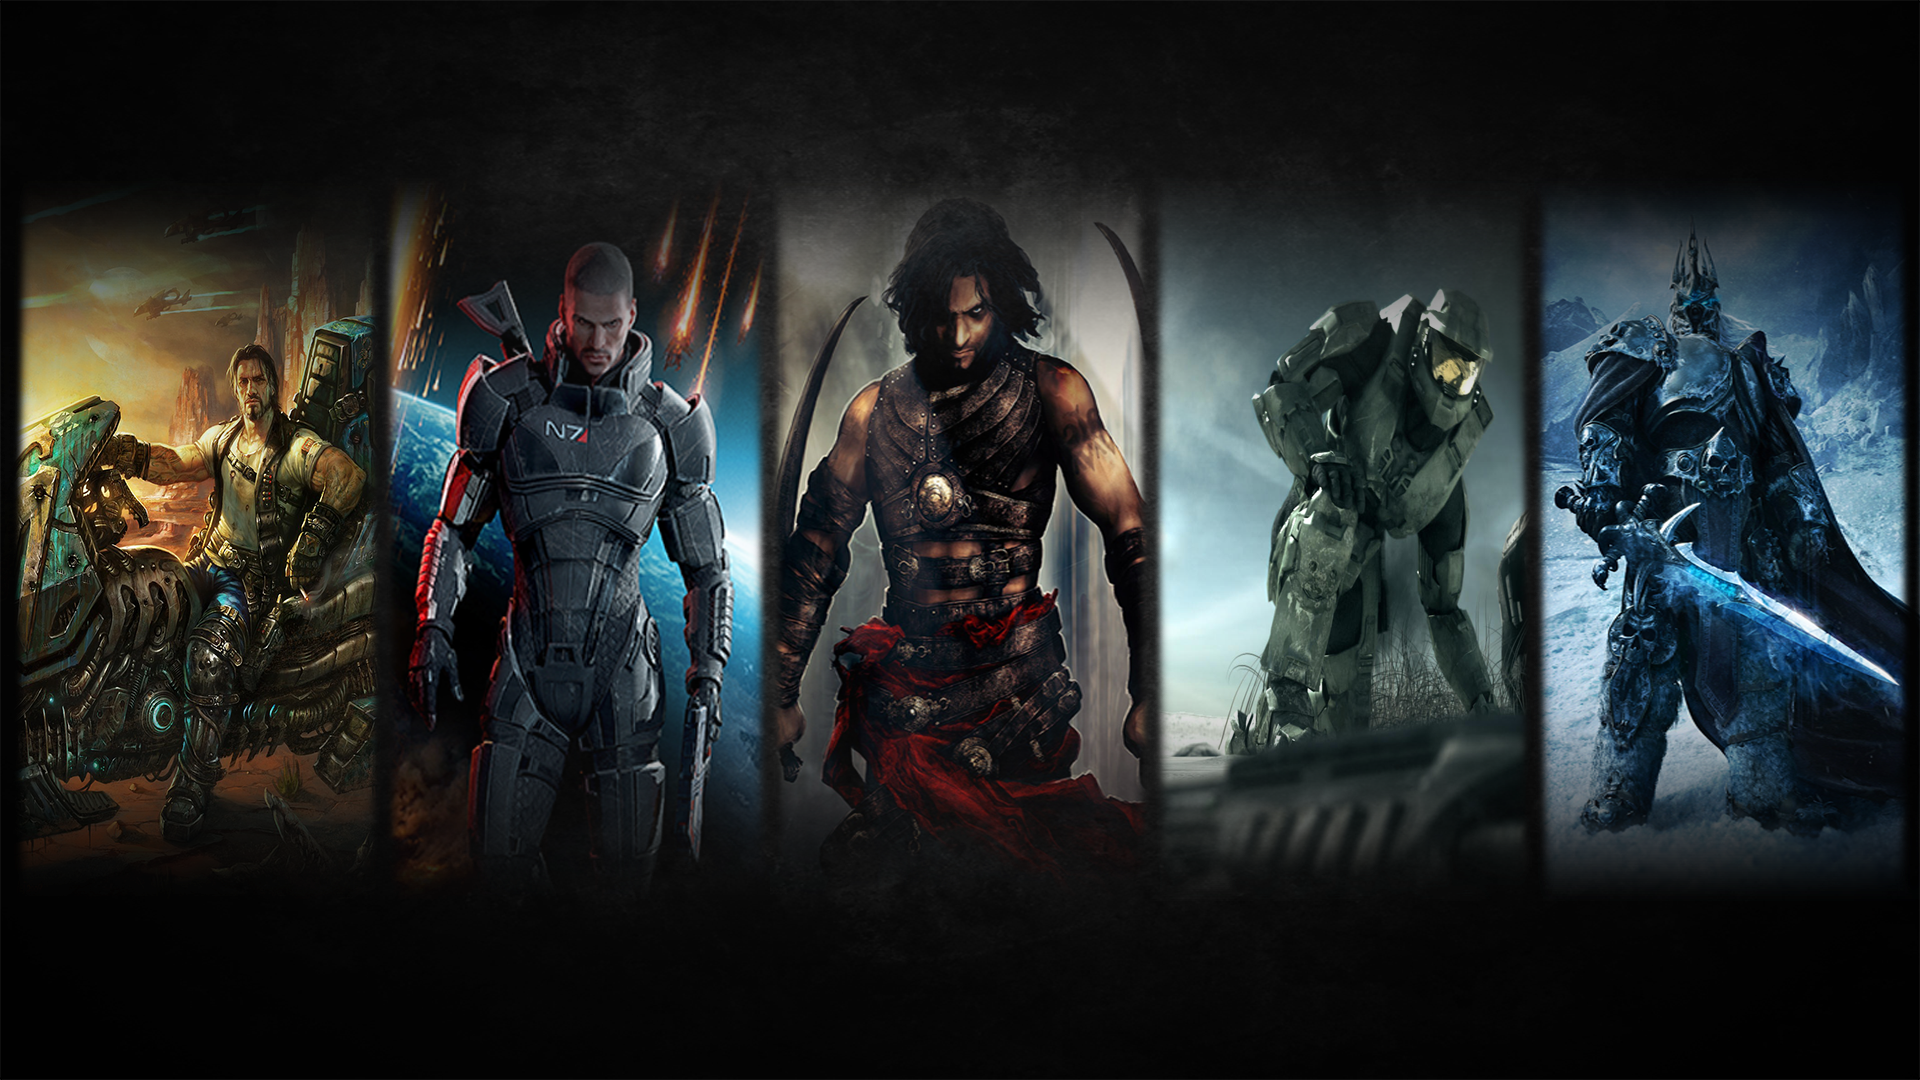 Download Wallpaper 1920x1080 Mortal Kombat Characters Name Game